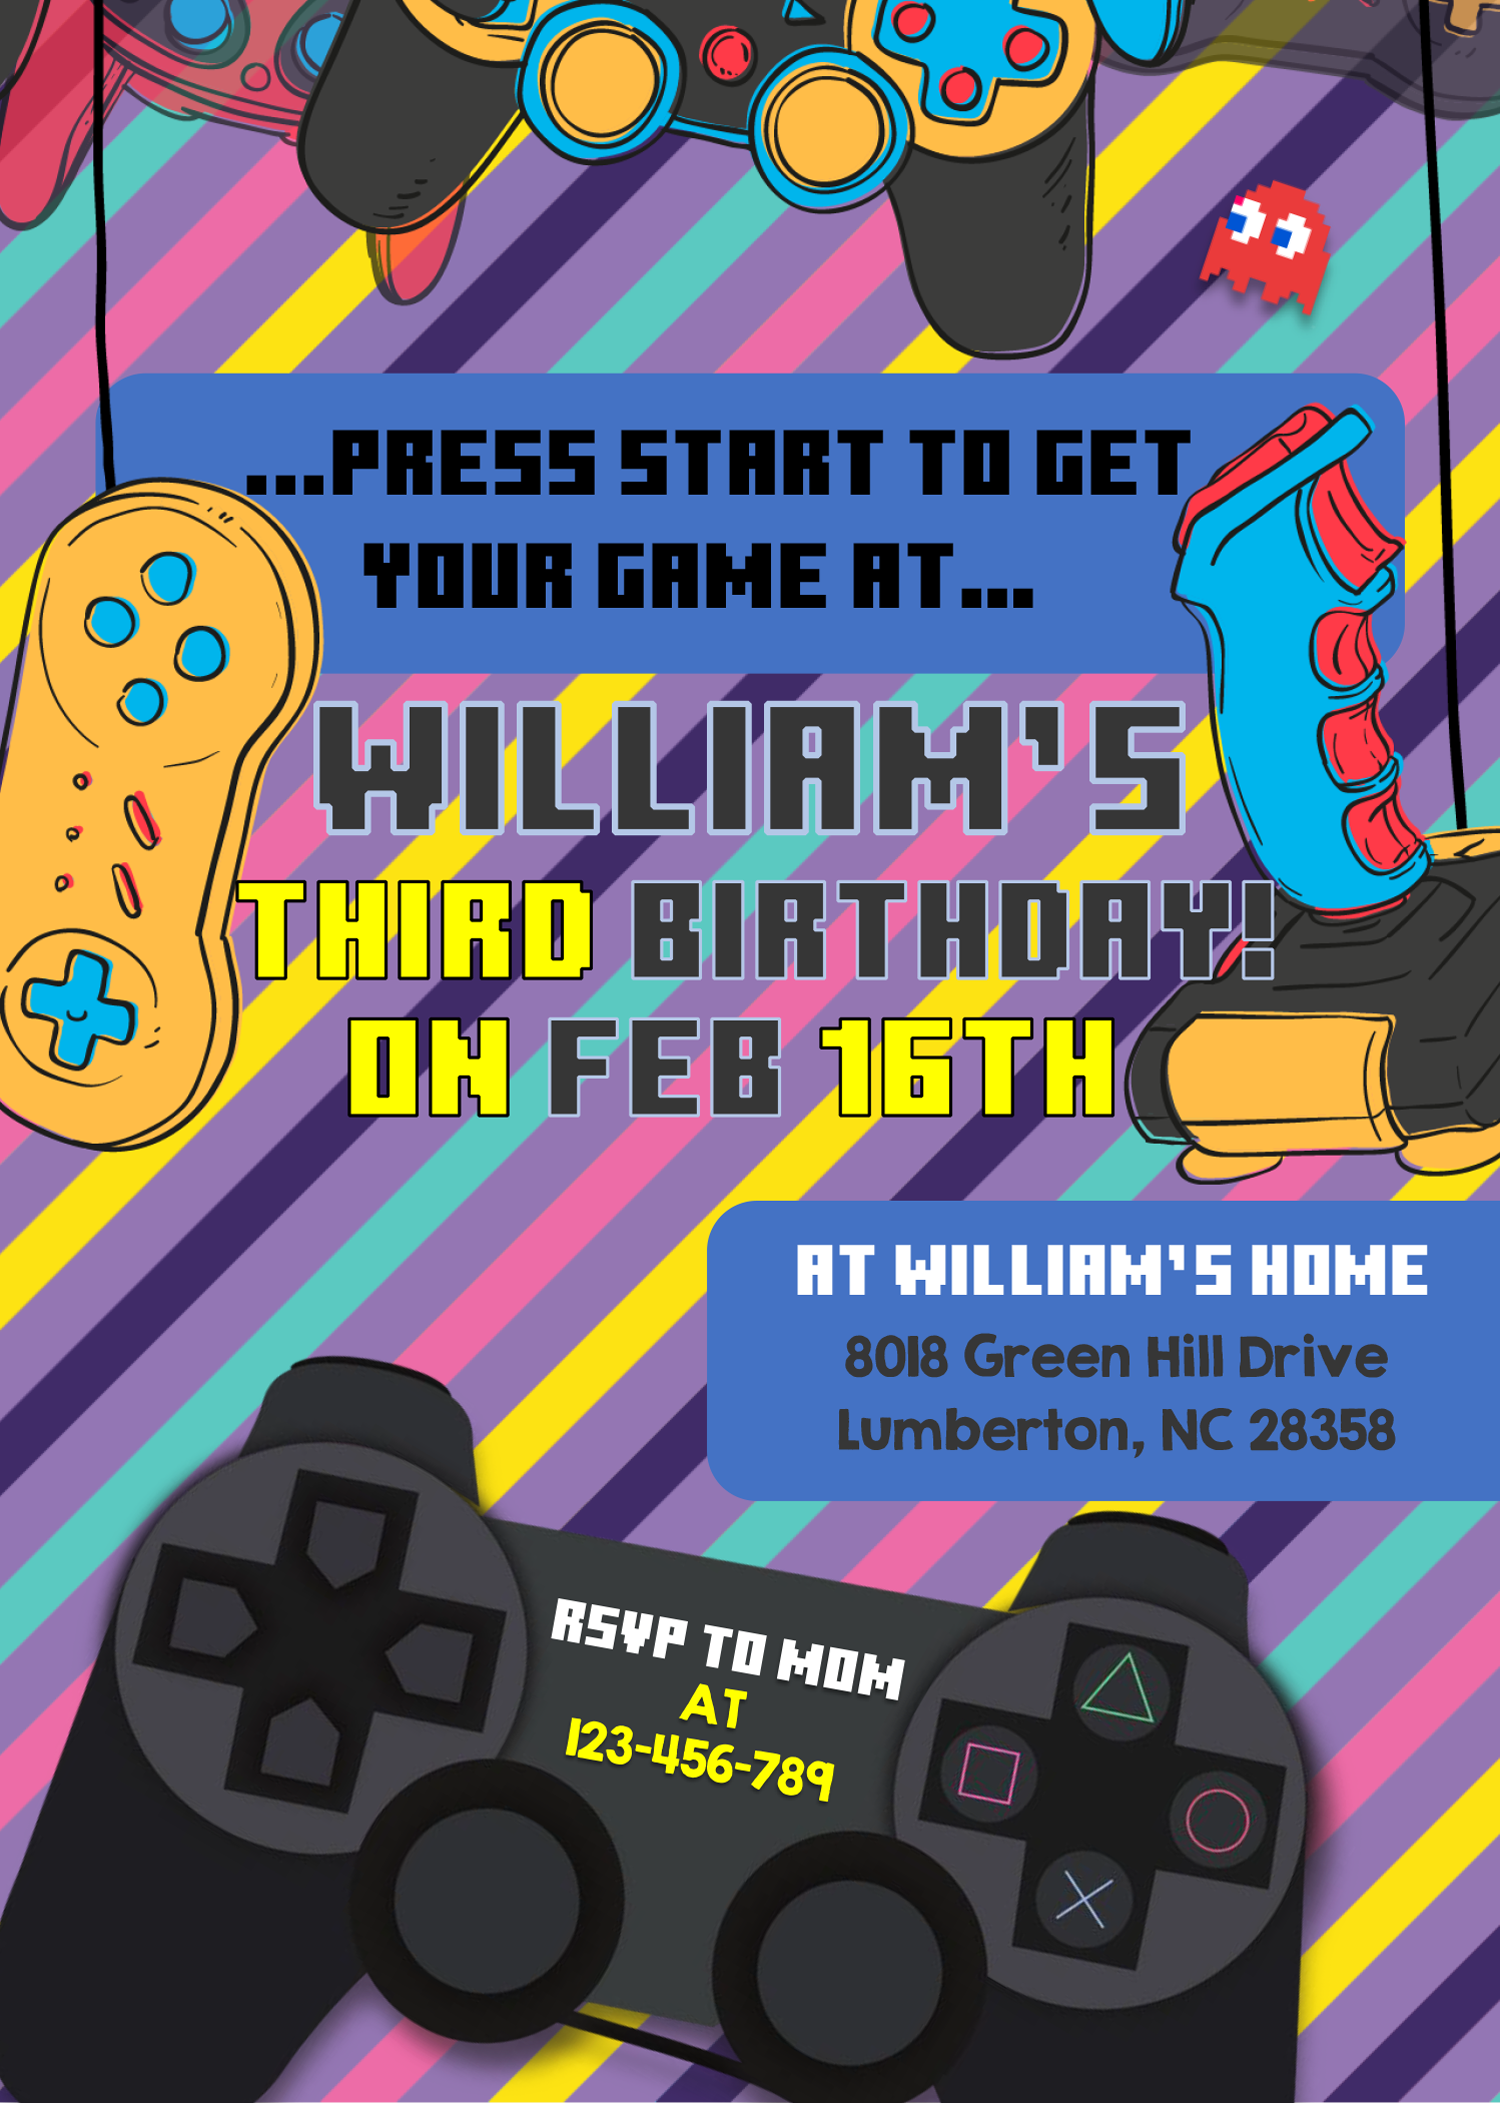 Video Game Invitation Templates Editable With Microsoft Word Free Printable Baby Shower Invitations Printable Baby Shower Invitations Invitation Template